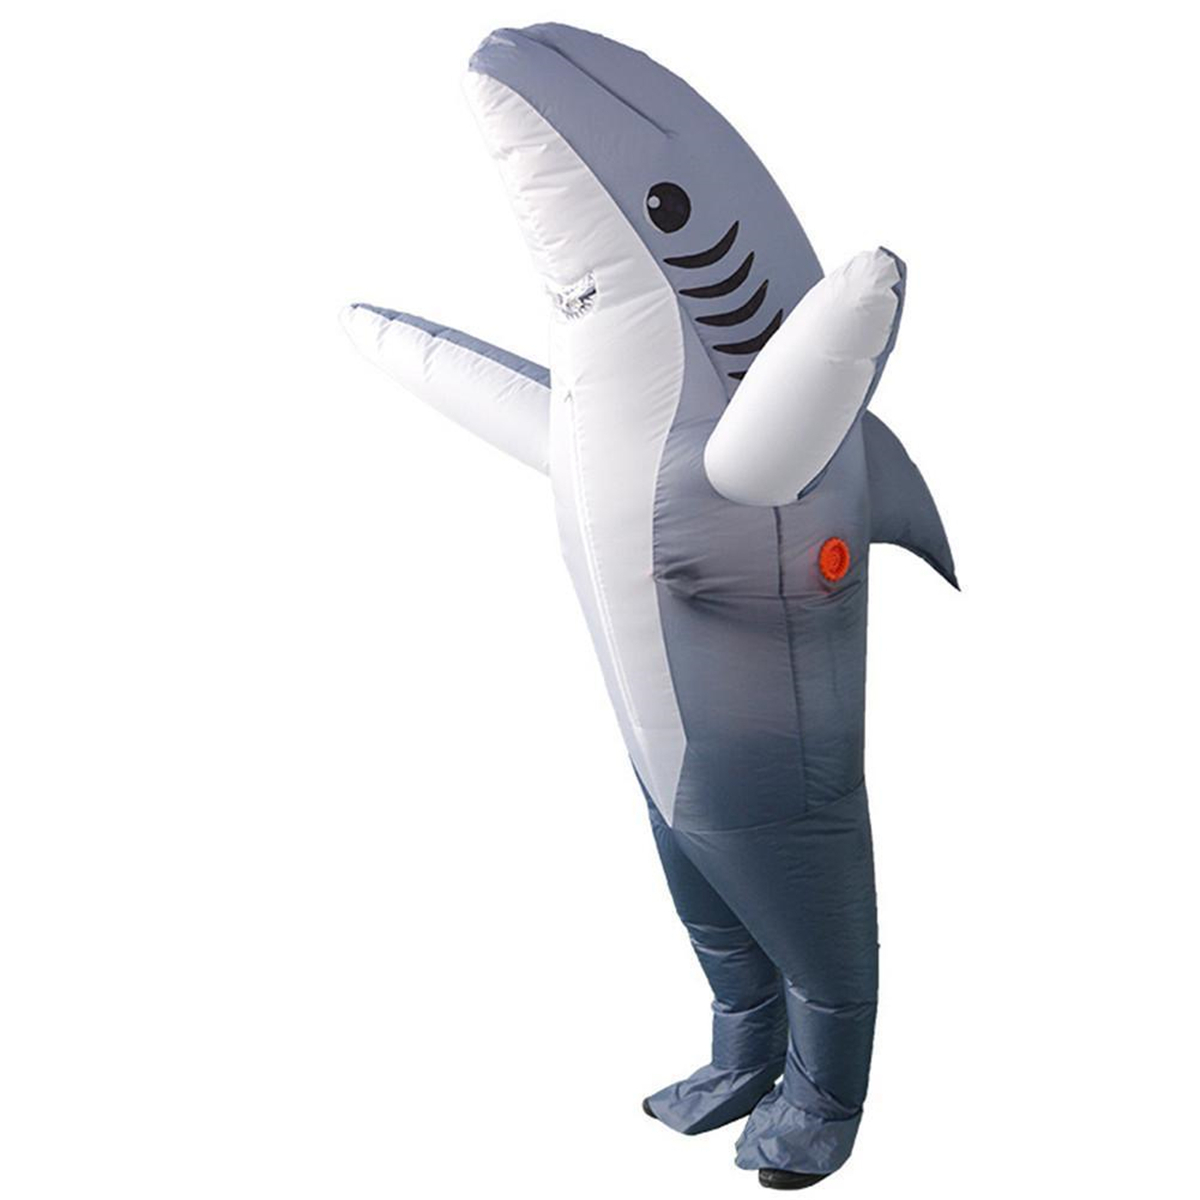 d7d59f148fba Inflatable Costumes Shark Adult Halloween Fancy Dress Funny Scary Dress  Costume